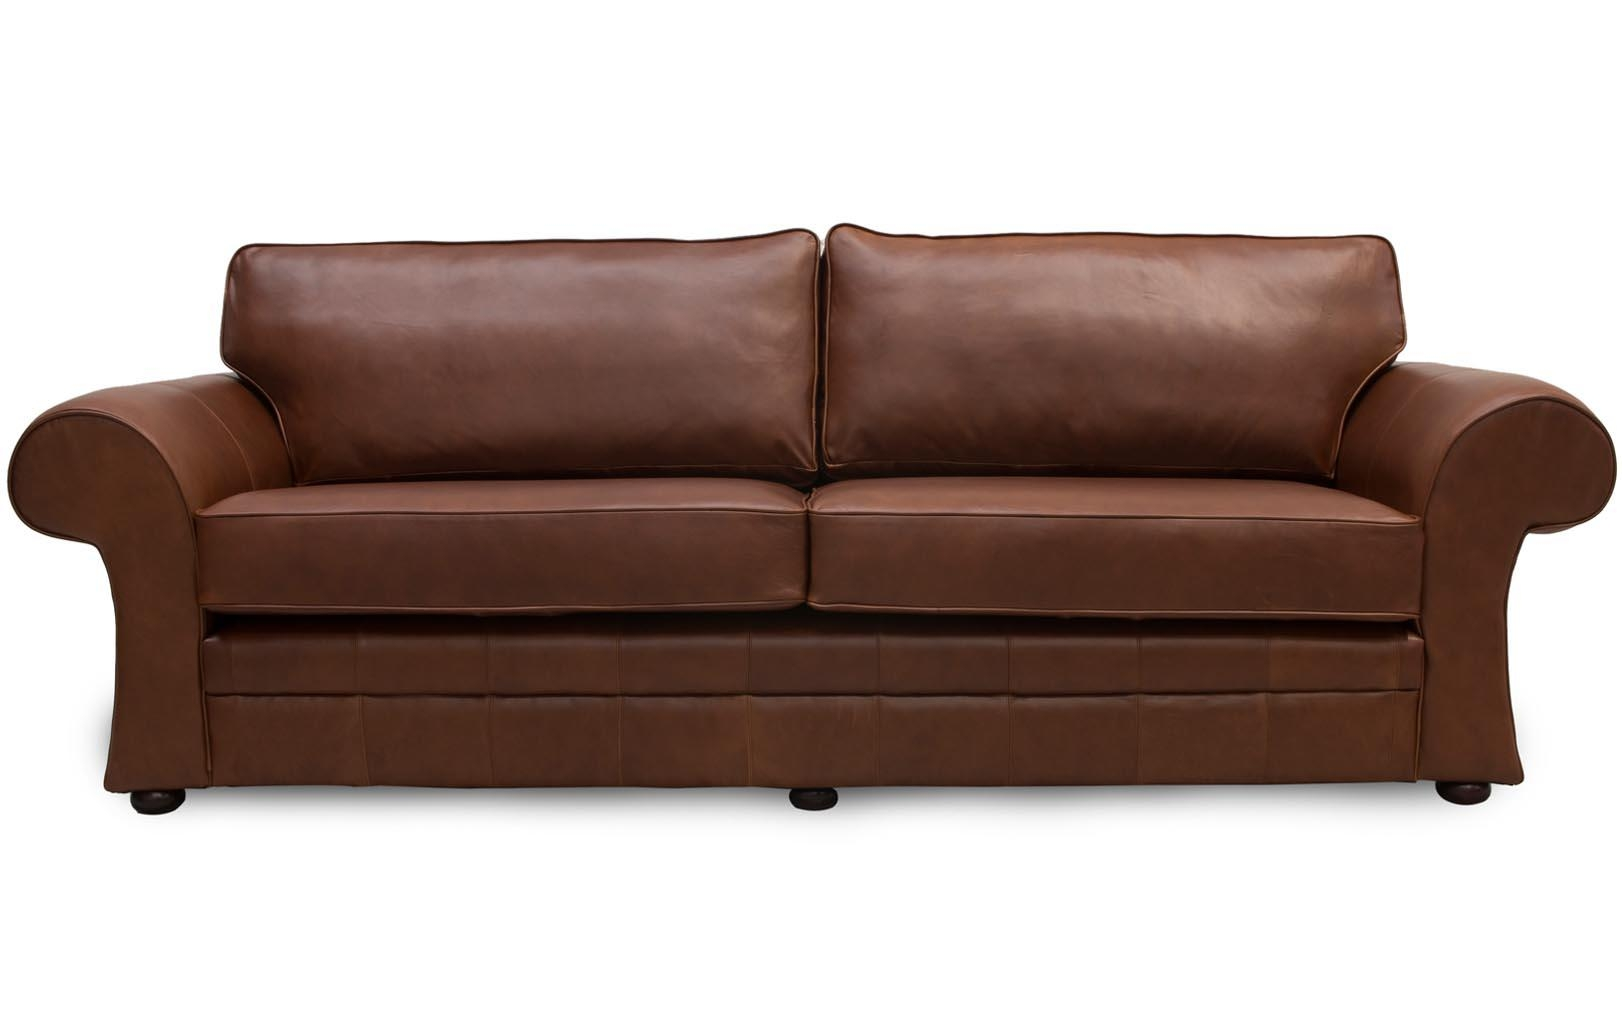 Cavan Scroll Arm Leather Sofa Made In Manchesterthe Leather For Manchester Sofas (View 10 of 20)